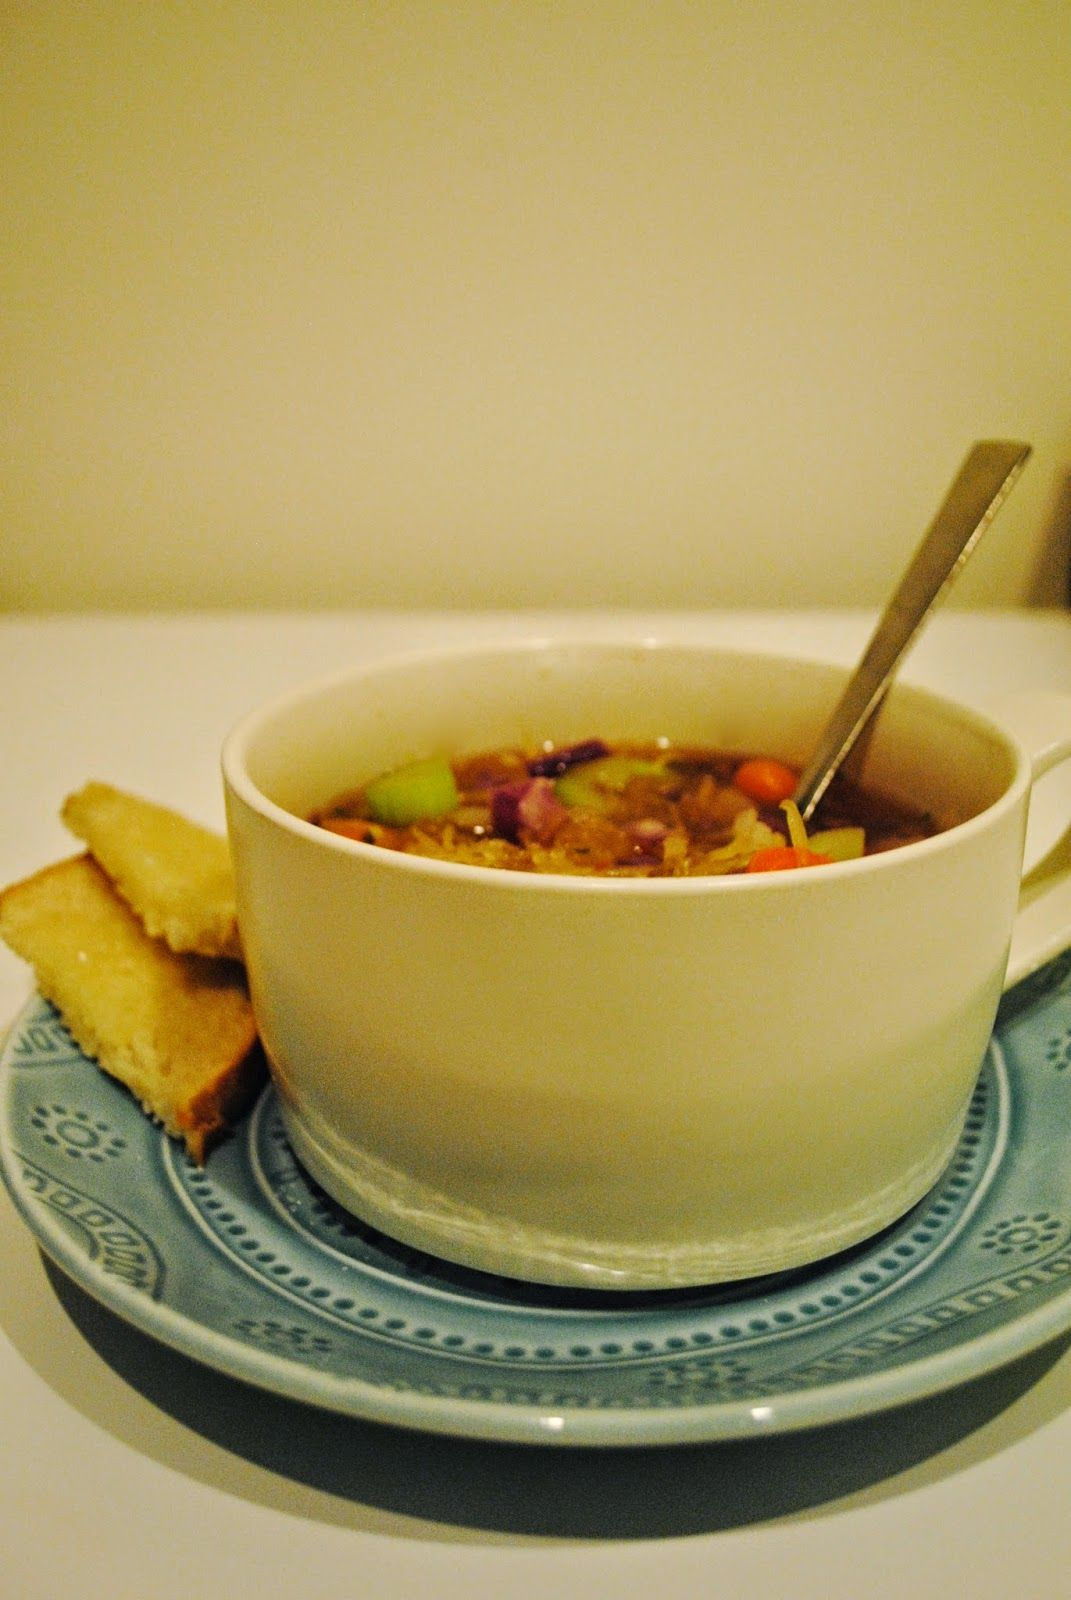 Cooking for One: Vegetable Spaghetti Squash Soup